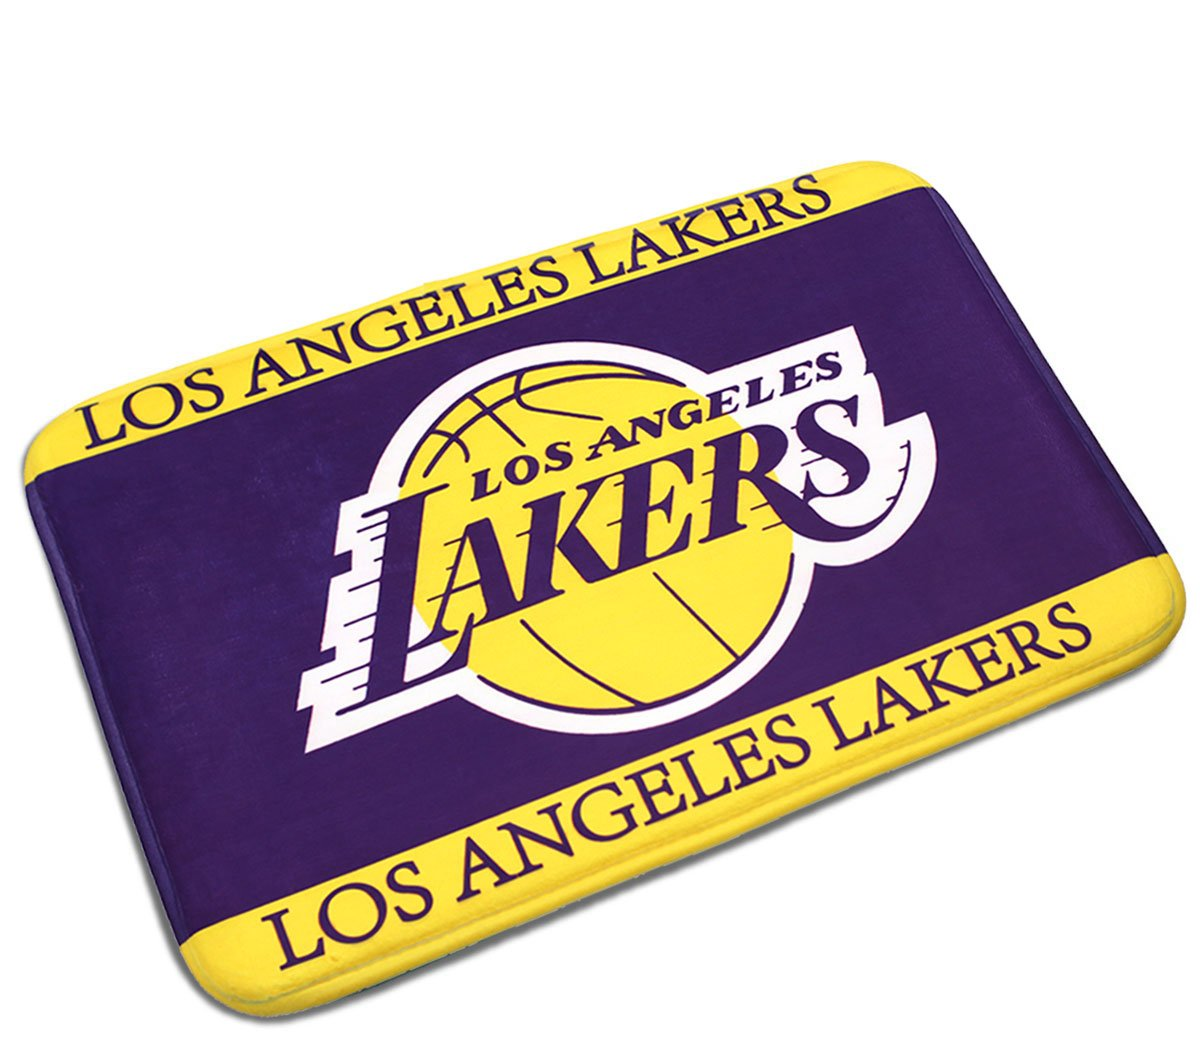 LAKERS Short Carpet Mats Cover Non-Slip Machine Washable Outdoor Indoor Bathroom Kitchen Decor Rug